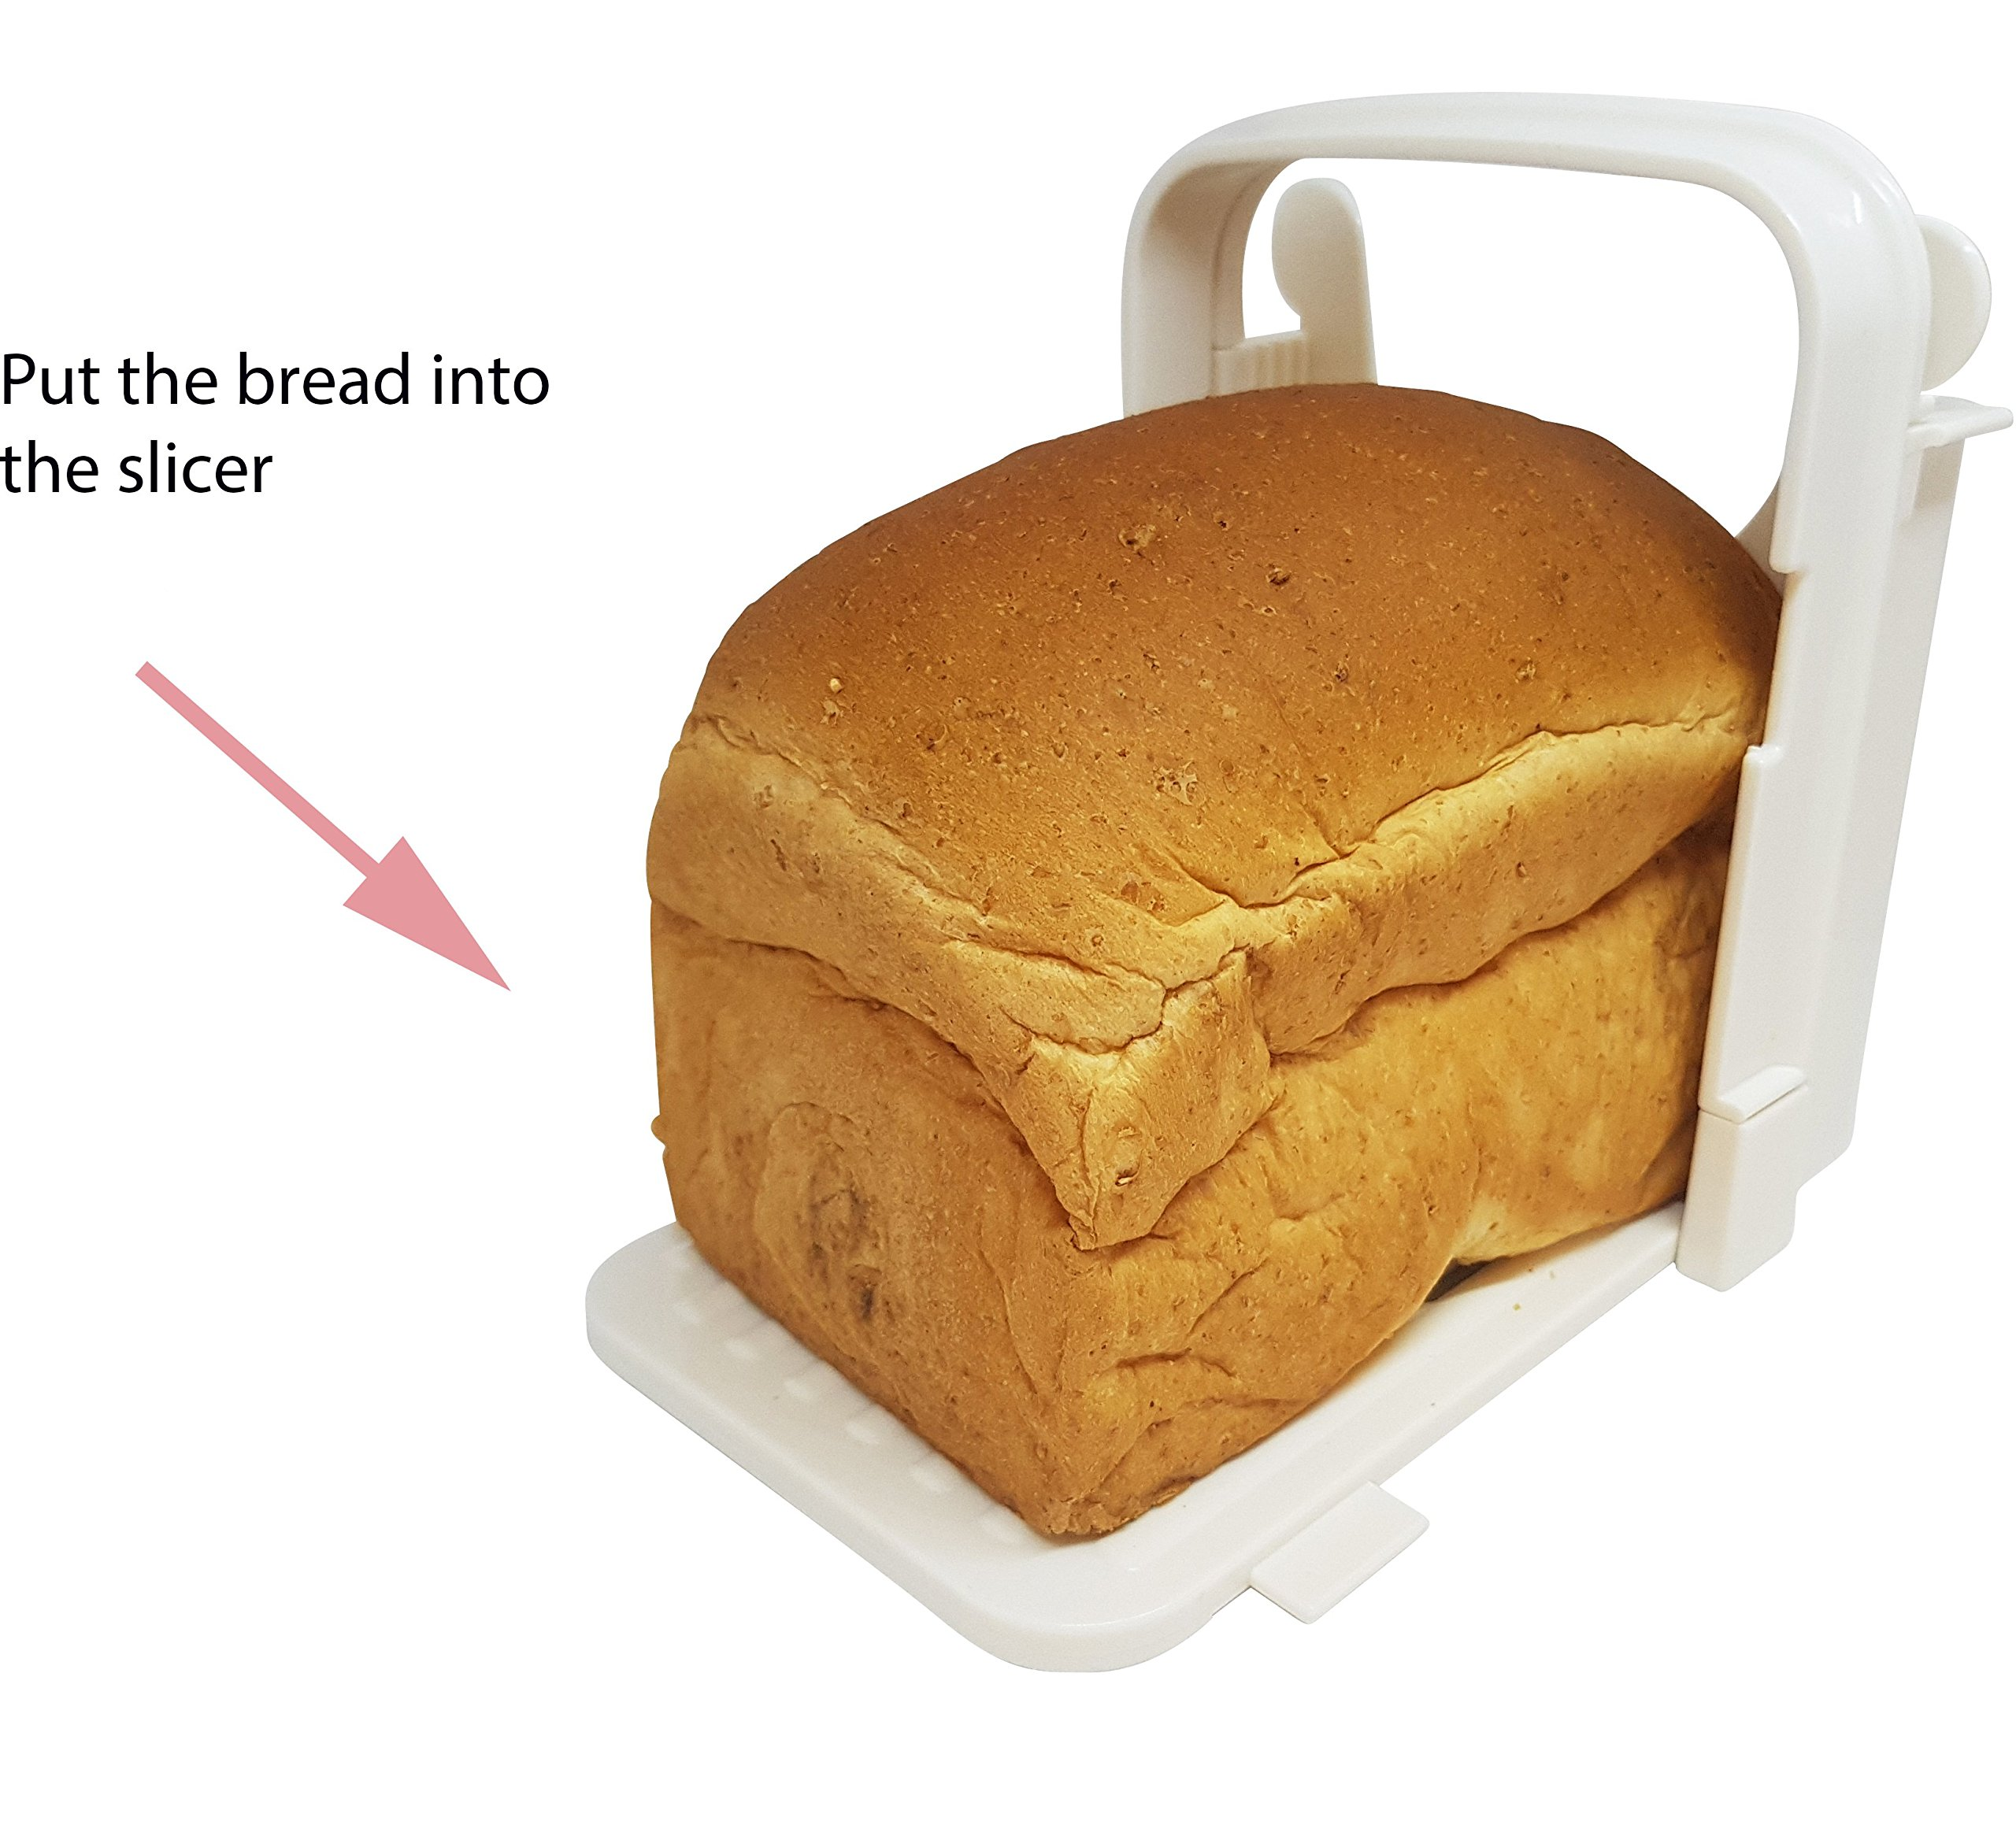 Eon Concepts Bread Slicer Guide For Homemade Bread With Mini Bread Recipe E-Book | Loaf Cutter Machine - Foldable Adjustable & Customizable to 5 Thickness | Bagel / Sandwich / Toast Slicer by Eon Concepts (Image #3)